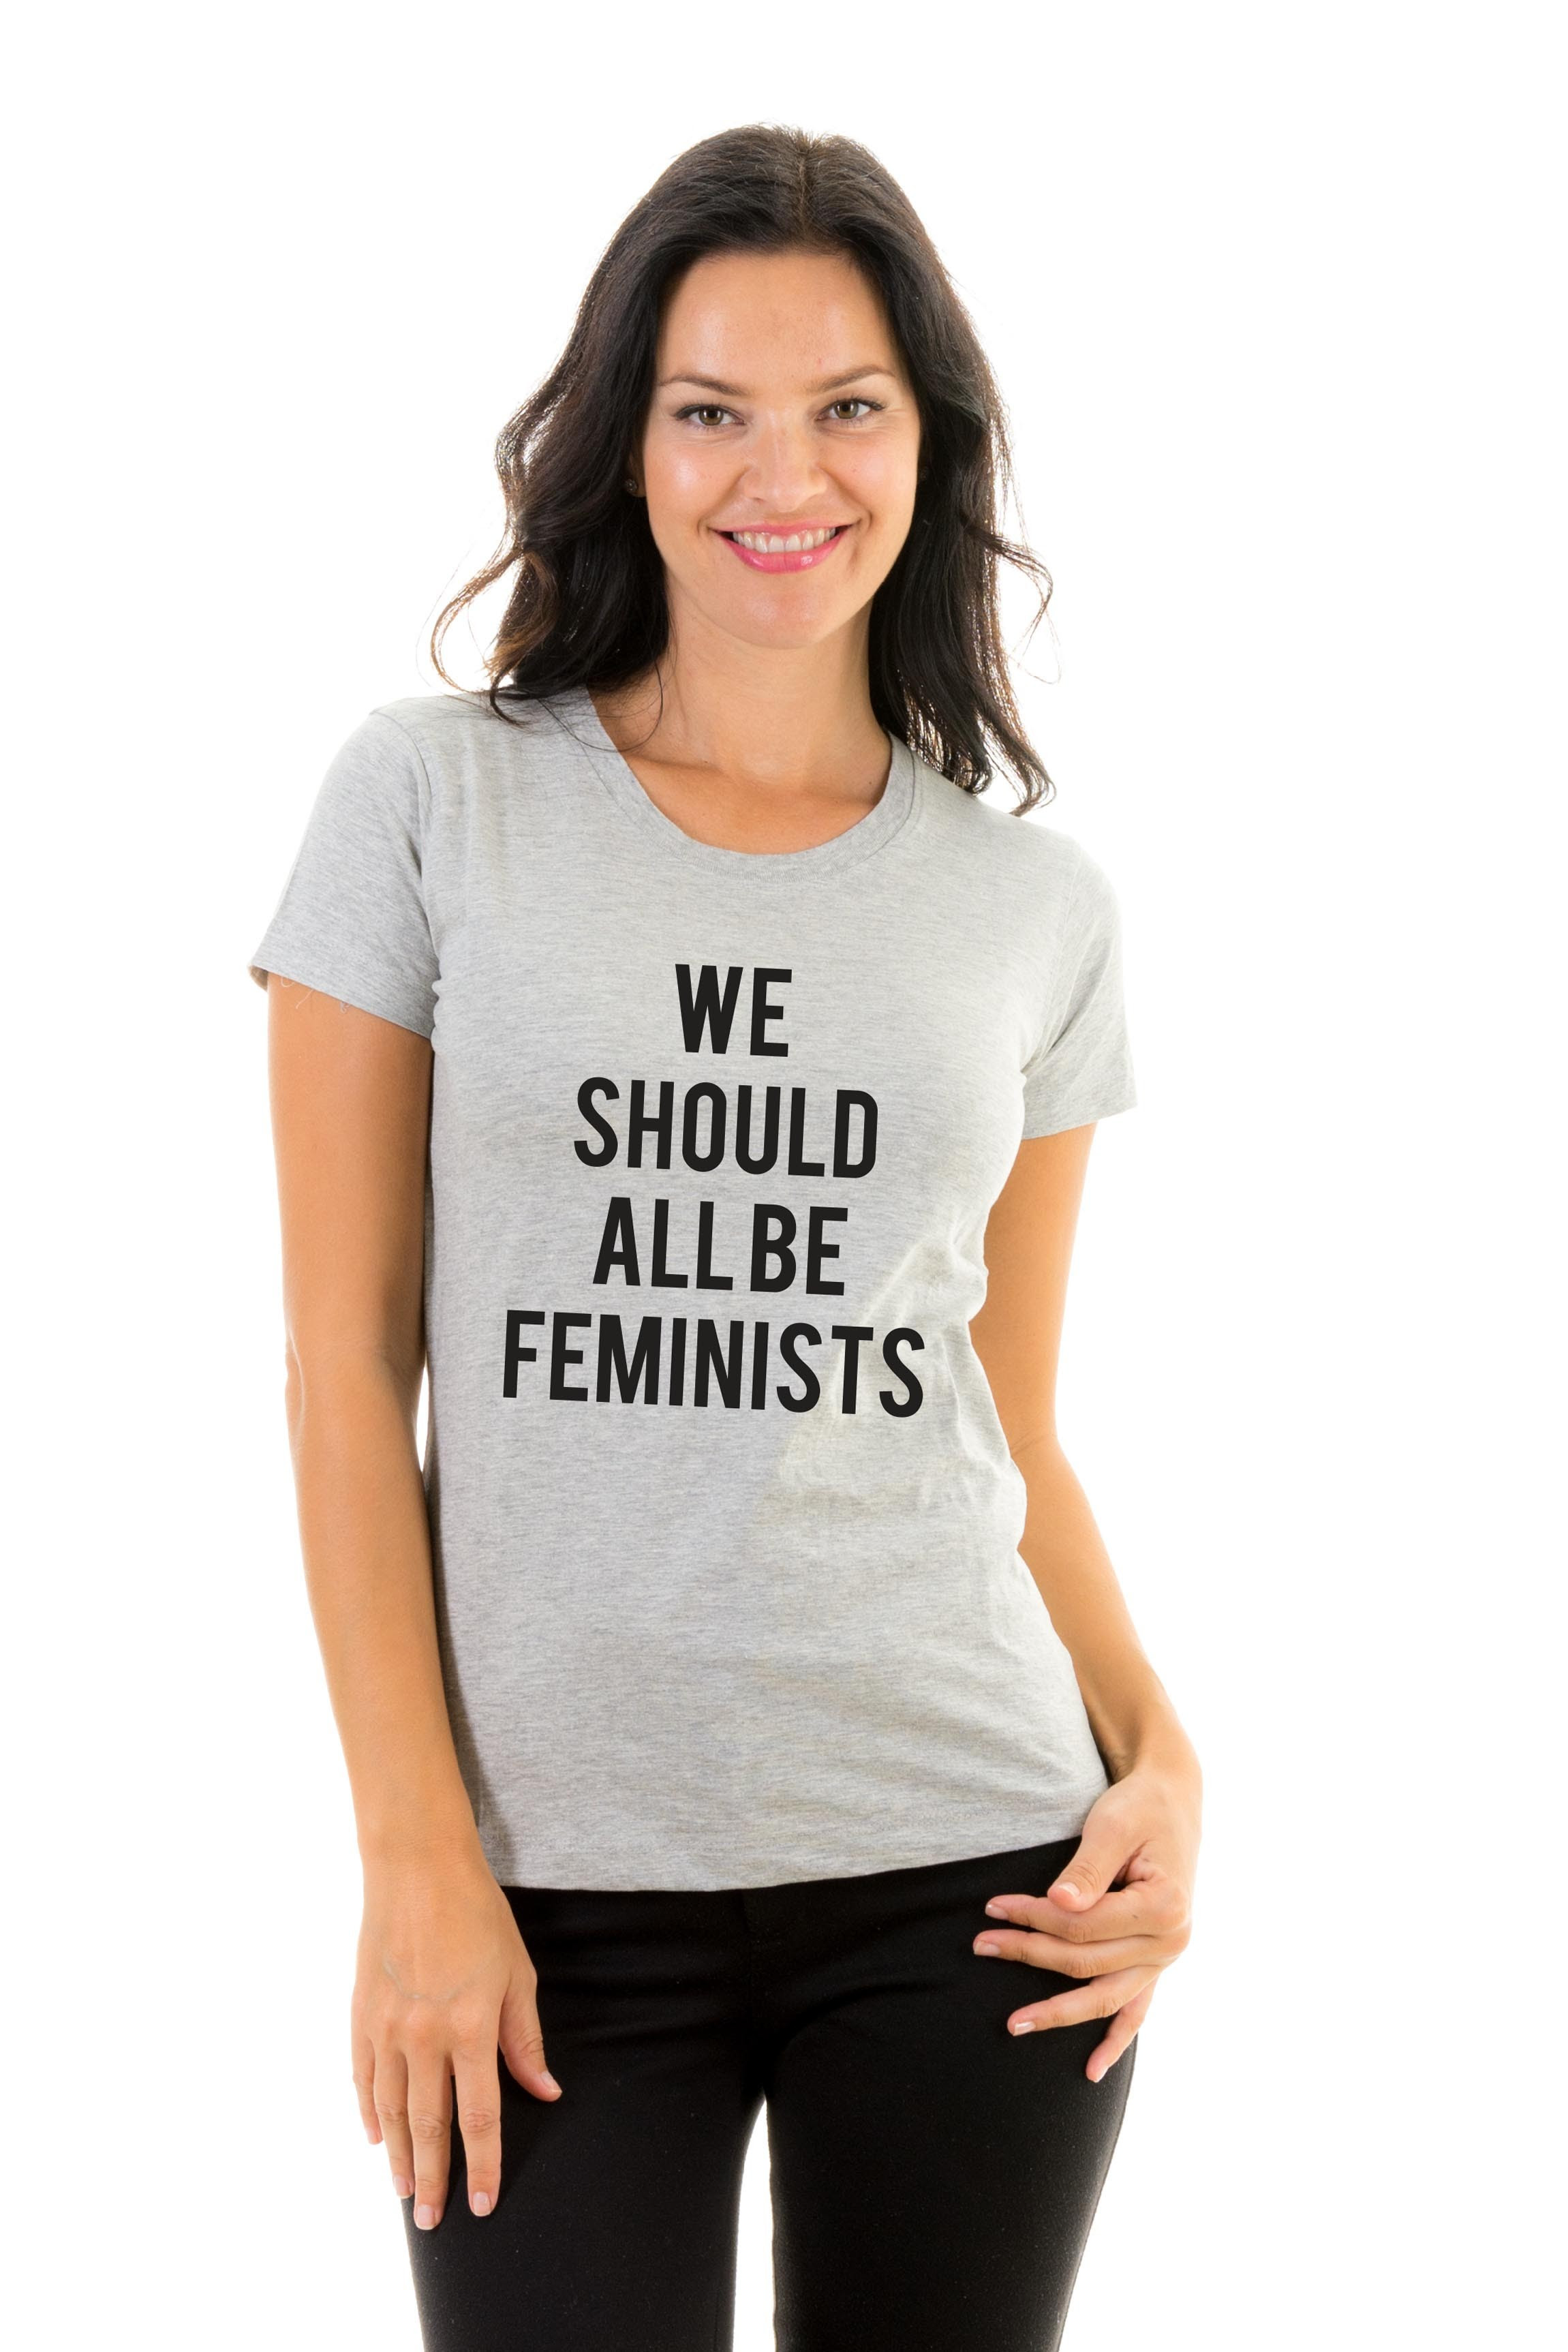 T Shirt We Should All Be Feminists Quotes Popular Themes Designs